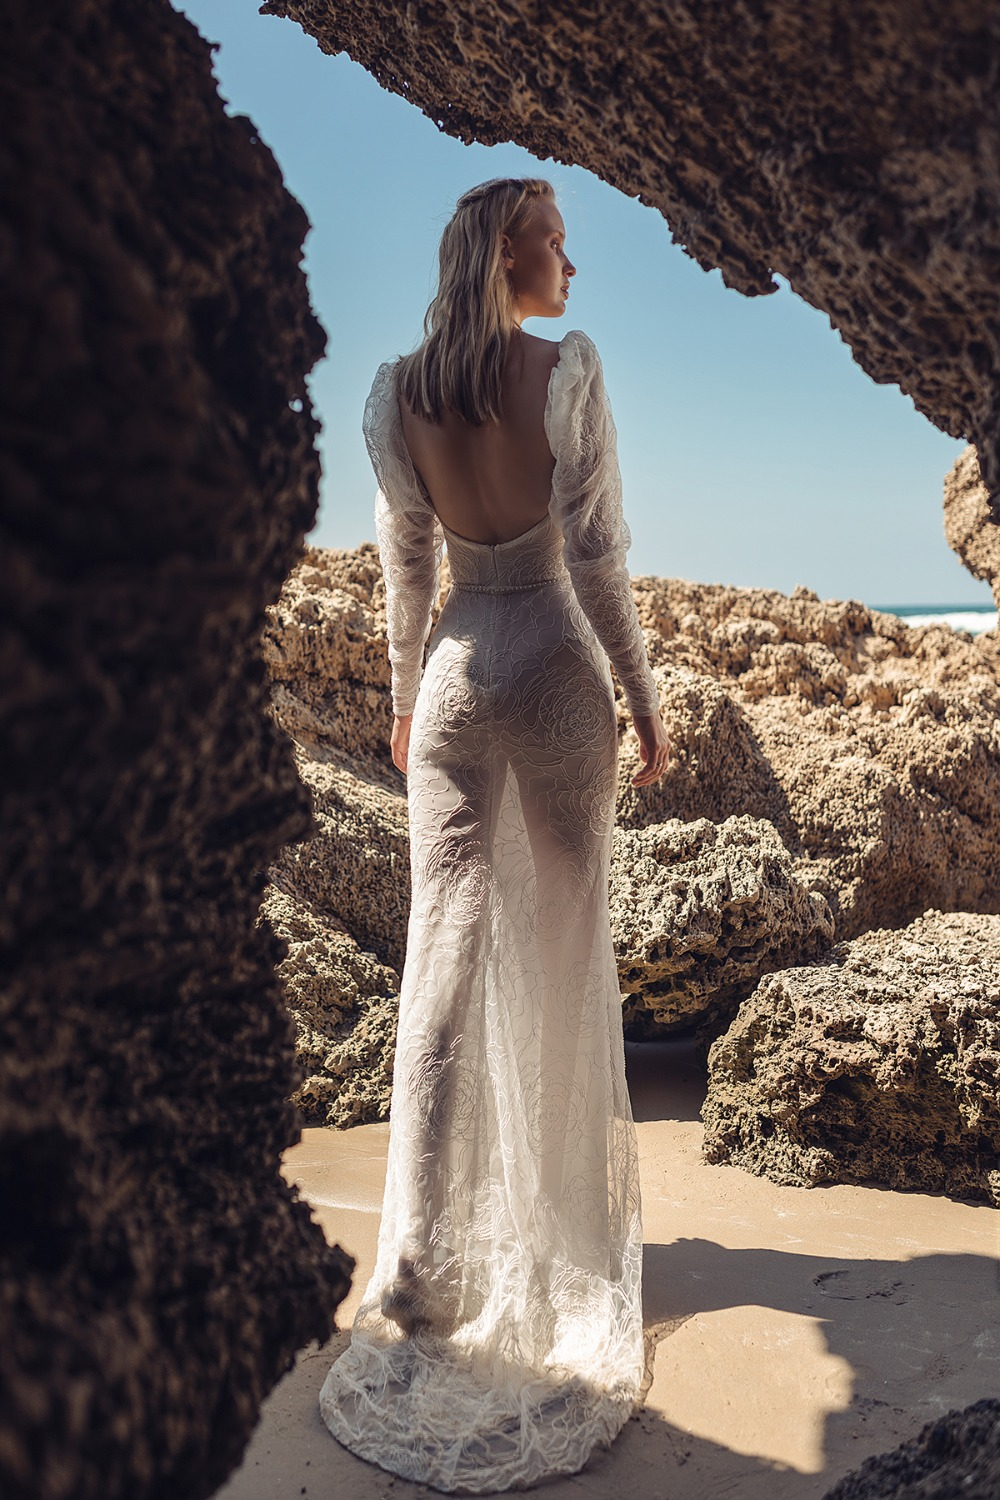 backless gown with dramatic puffed sleeves by Lilium